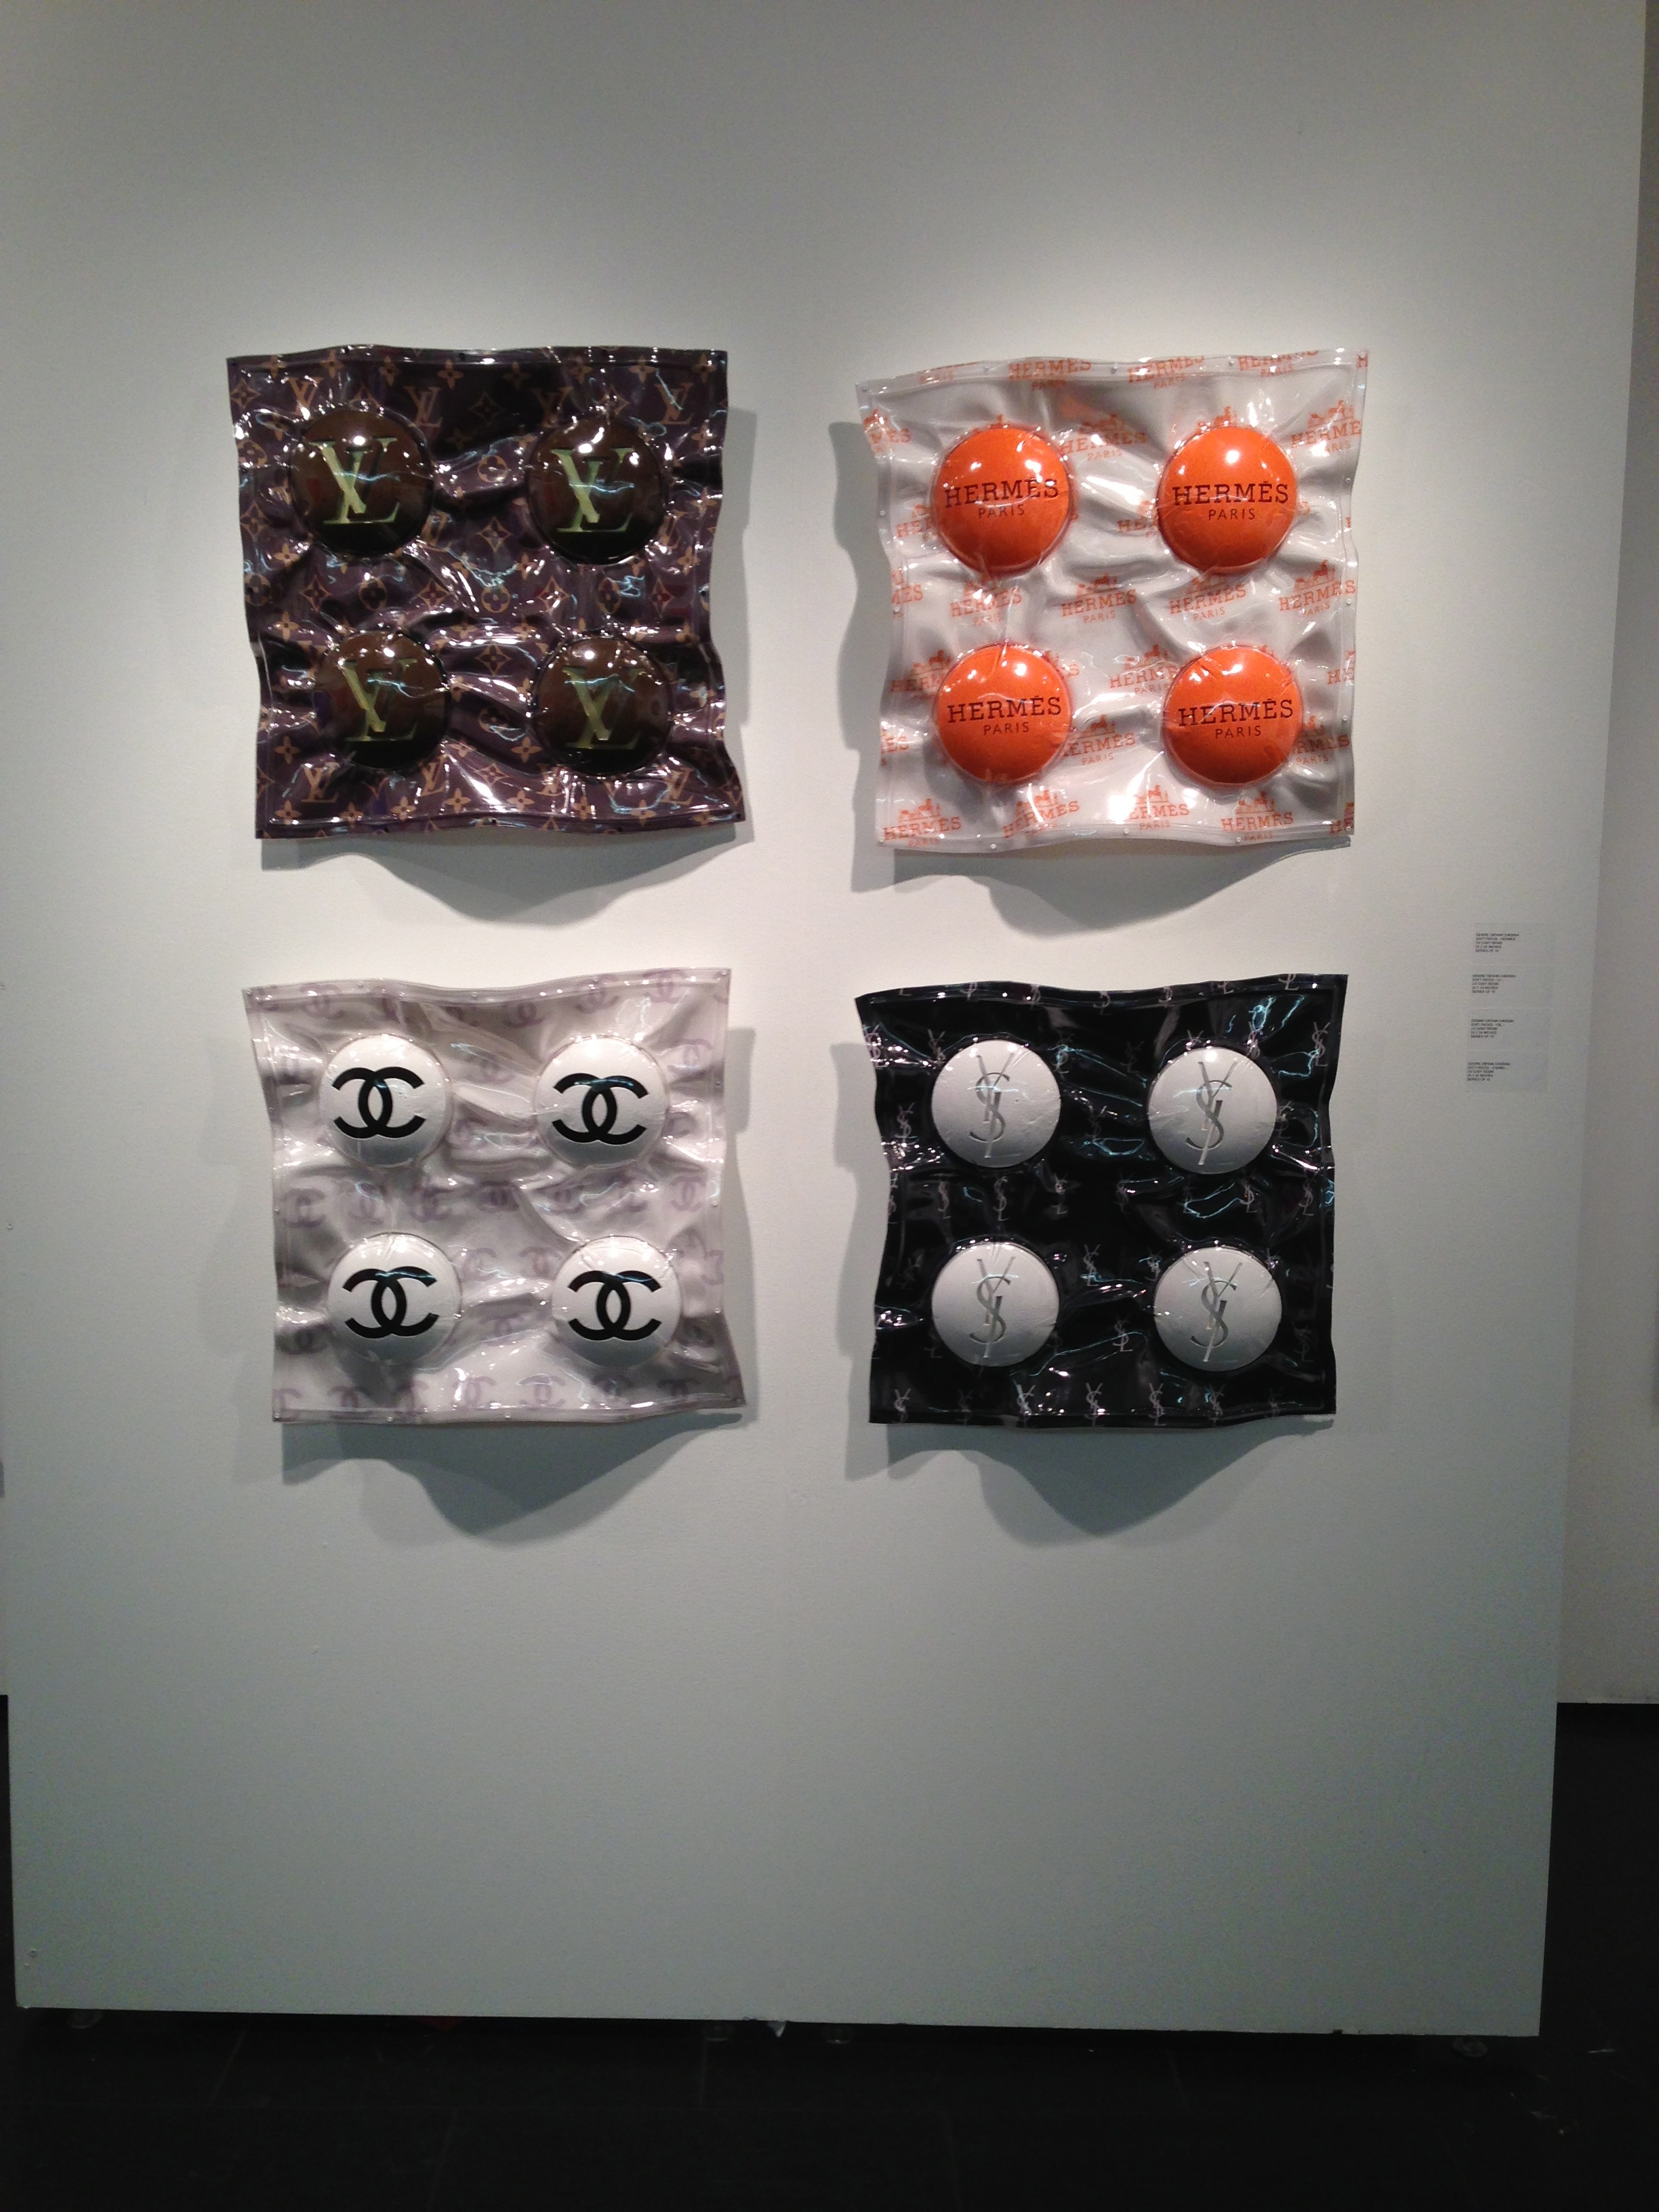 Lisa Derrick: Scope NY-- Desire Obtain Cherish: Drugs, Fame, and Art